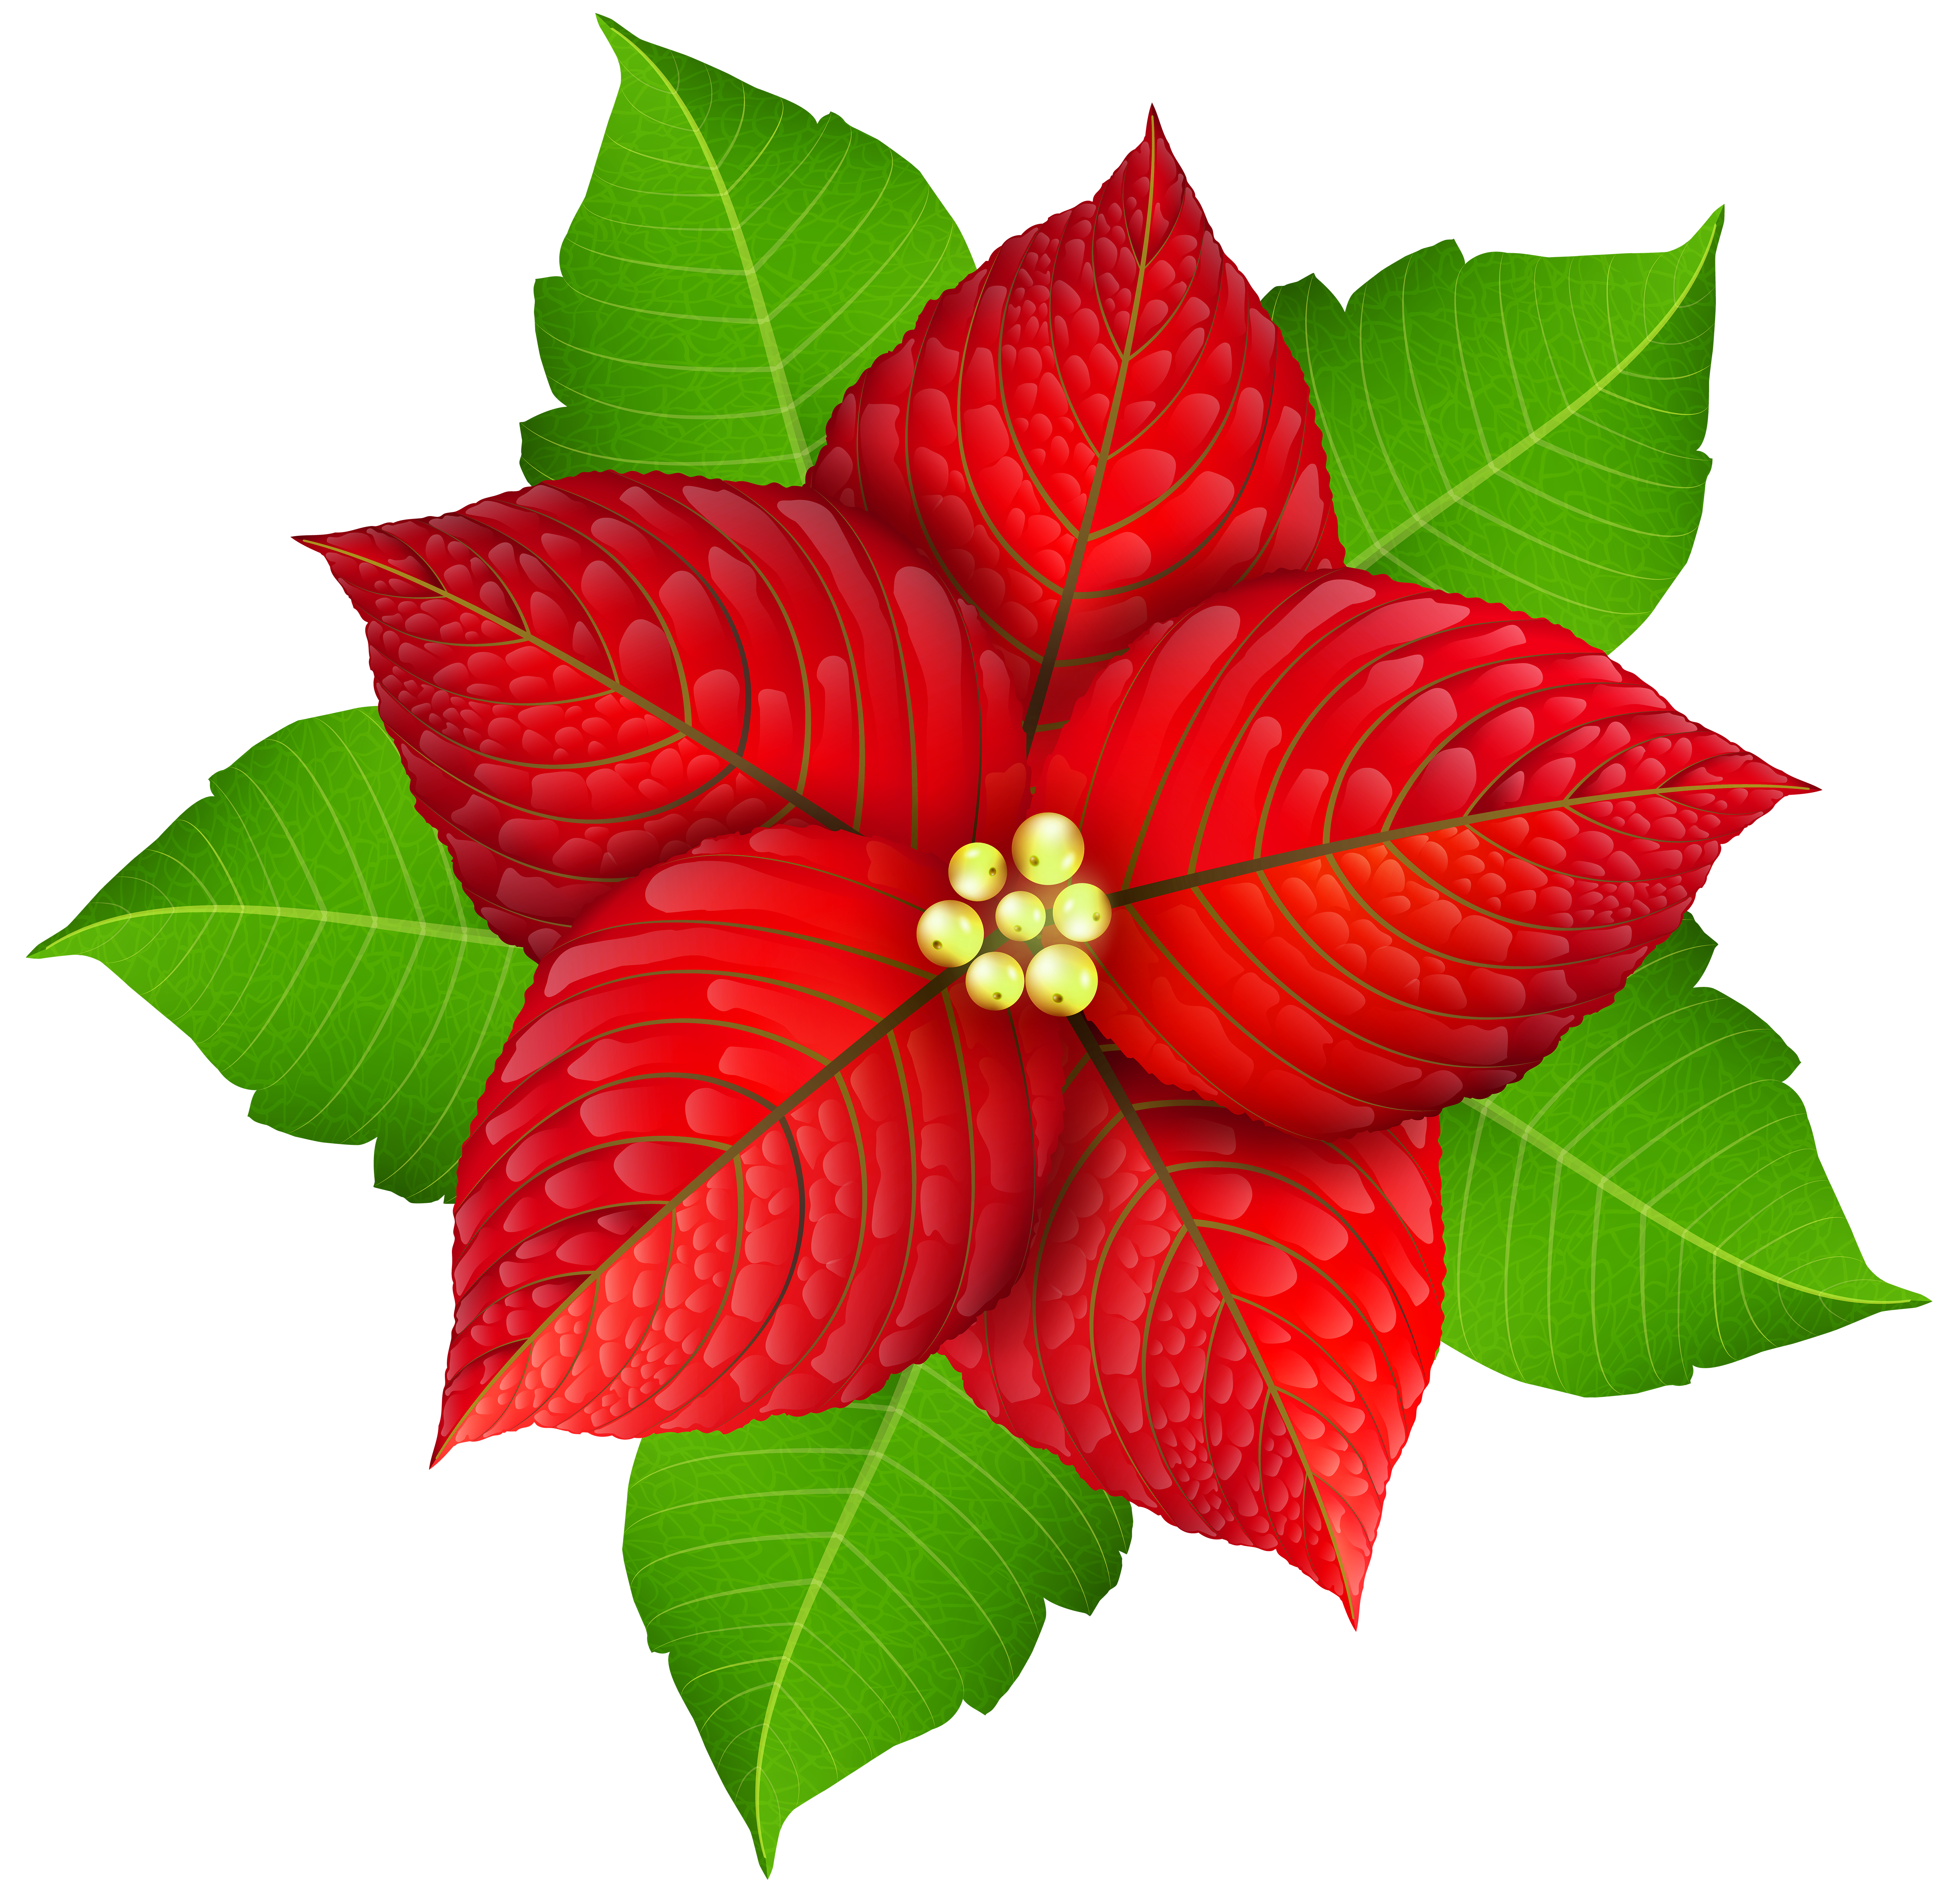 Poinsettias clipart with transparent background graphic transparent download Christmas Poinsettia Transparent PNG Image | Gallery ... graphic transparent download